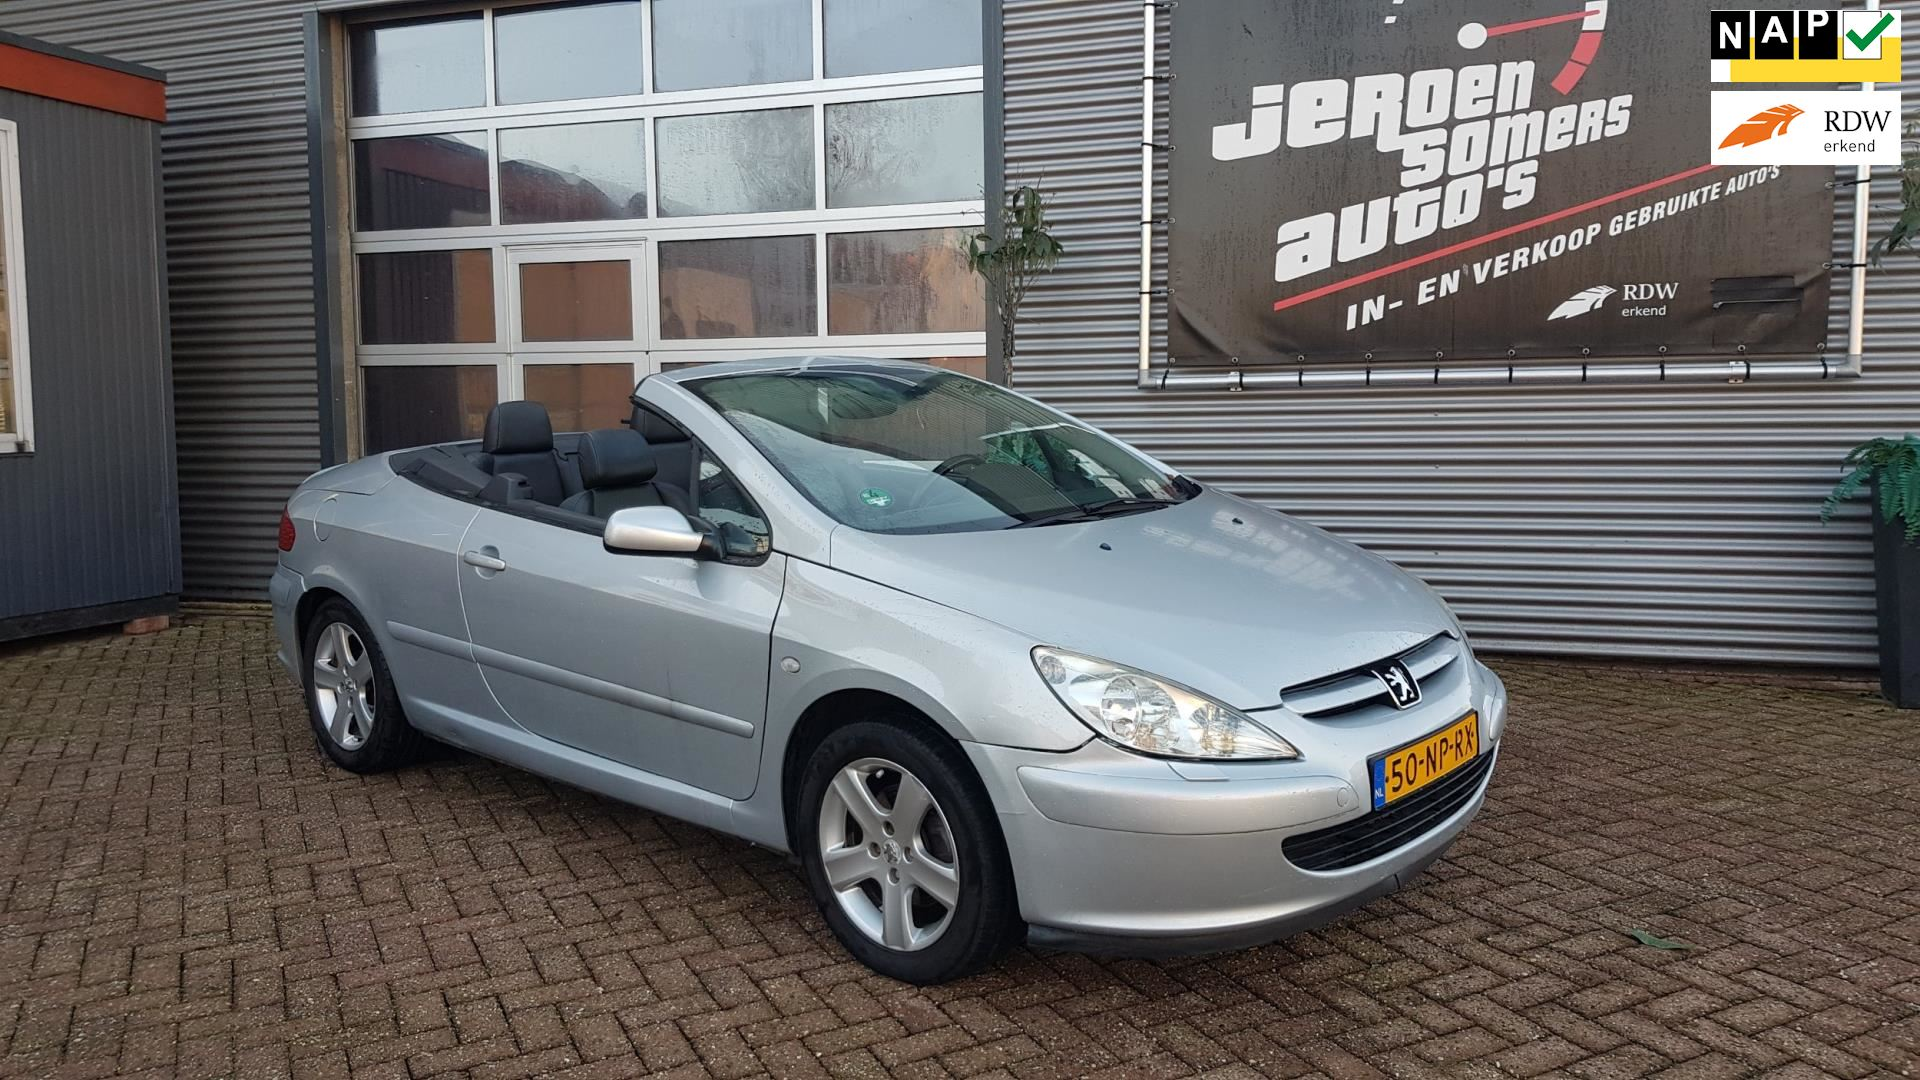 Peugeot 307 CC occasion - Jeroen Somers Auto´s